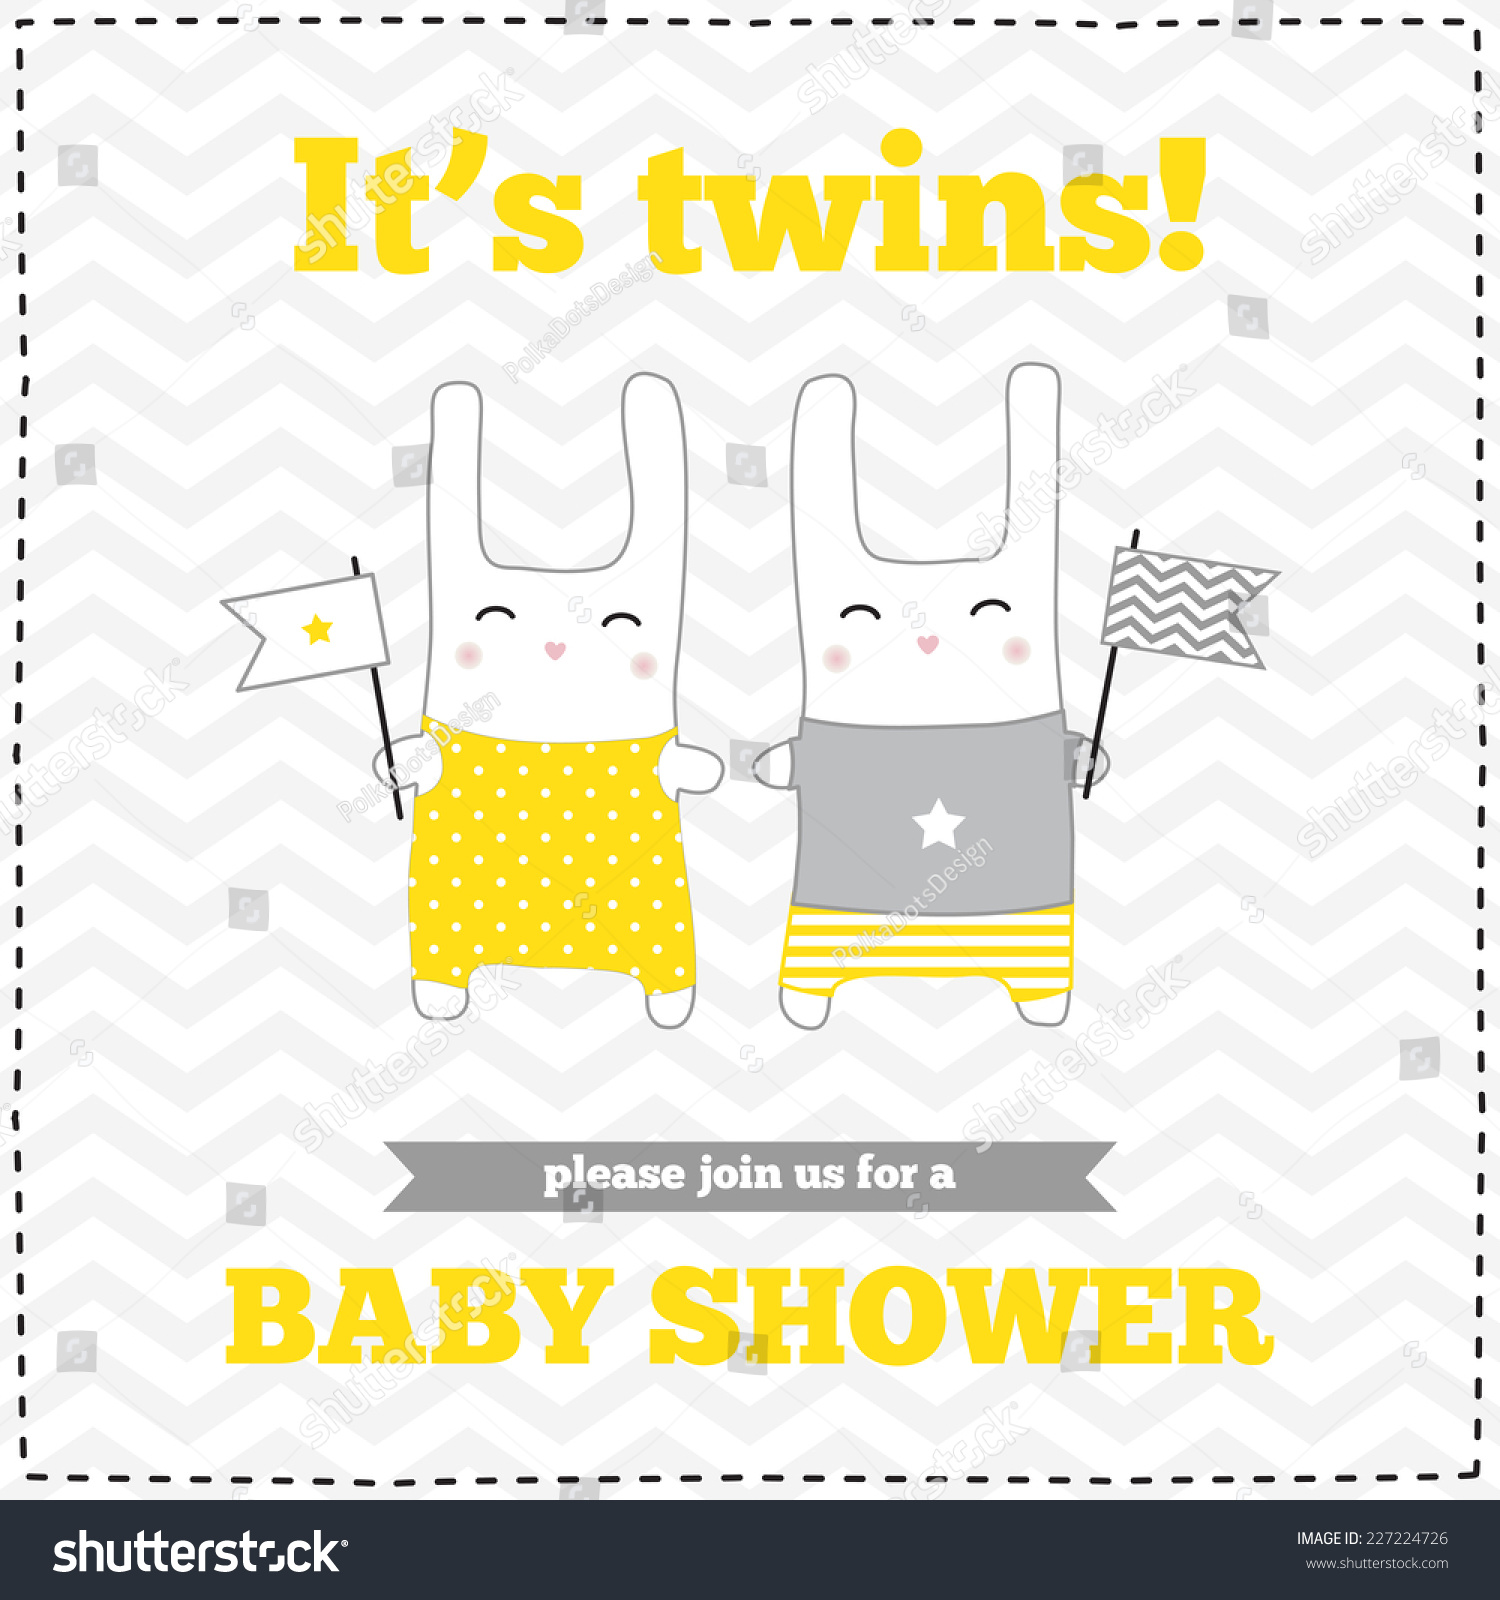 Baby shower invitation template gray yellow stock photo photo baby shower invitation template gray yellow white colors illustration of twins stopboris Image collections